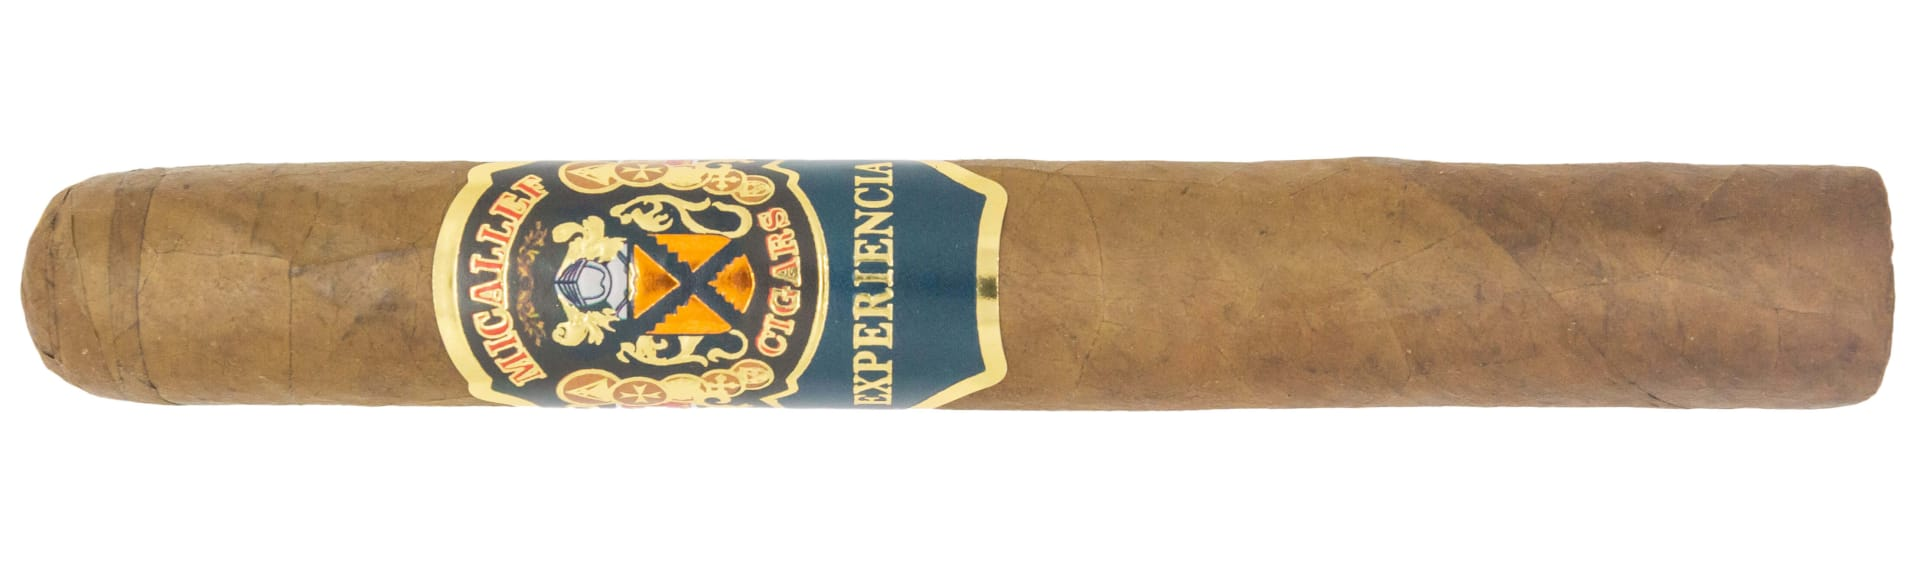 Blind Cigar Review: Micallef | Experiencia La Crema Toro Featured Image